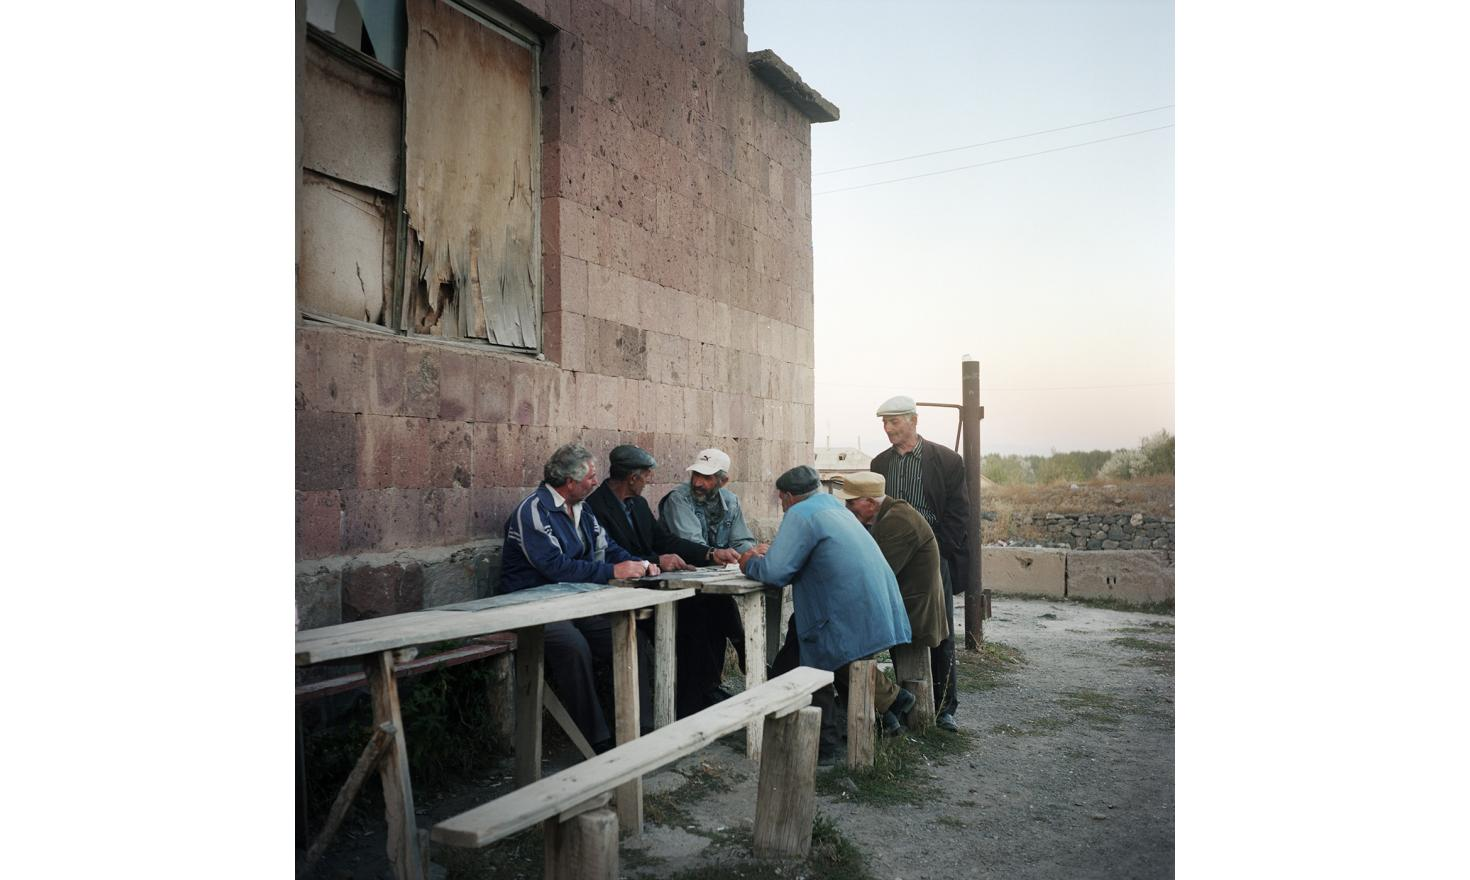 Every day they're here, it is the point of gathering for the old men of the village. They play cards, talk, play with their rosaries and tell how life has become difficult here.